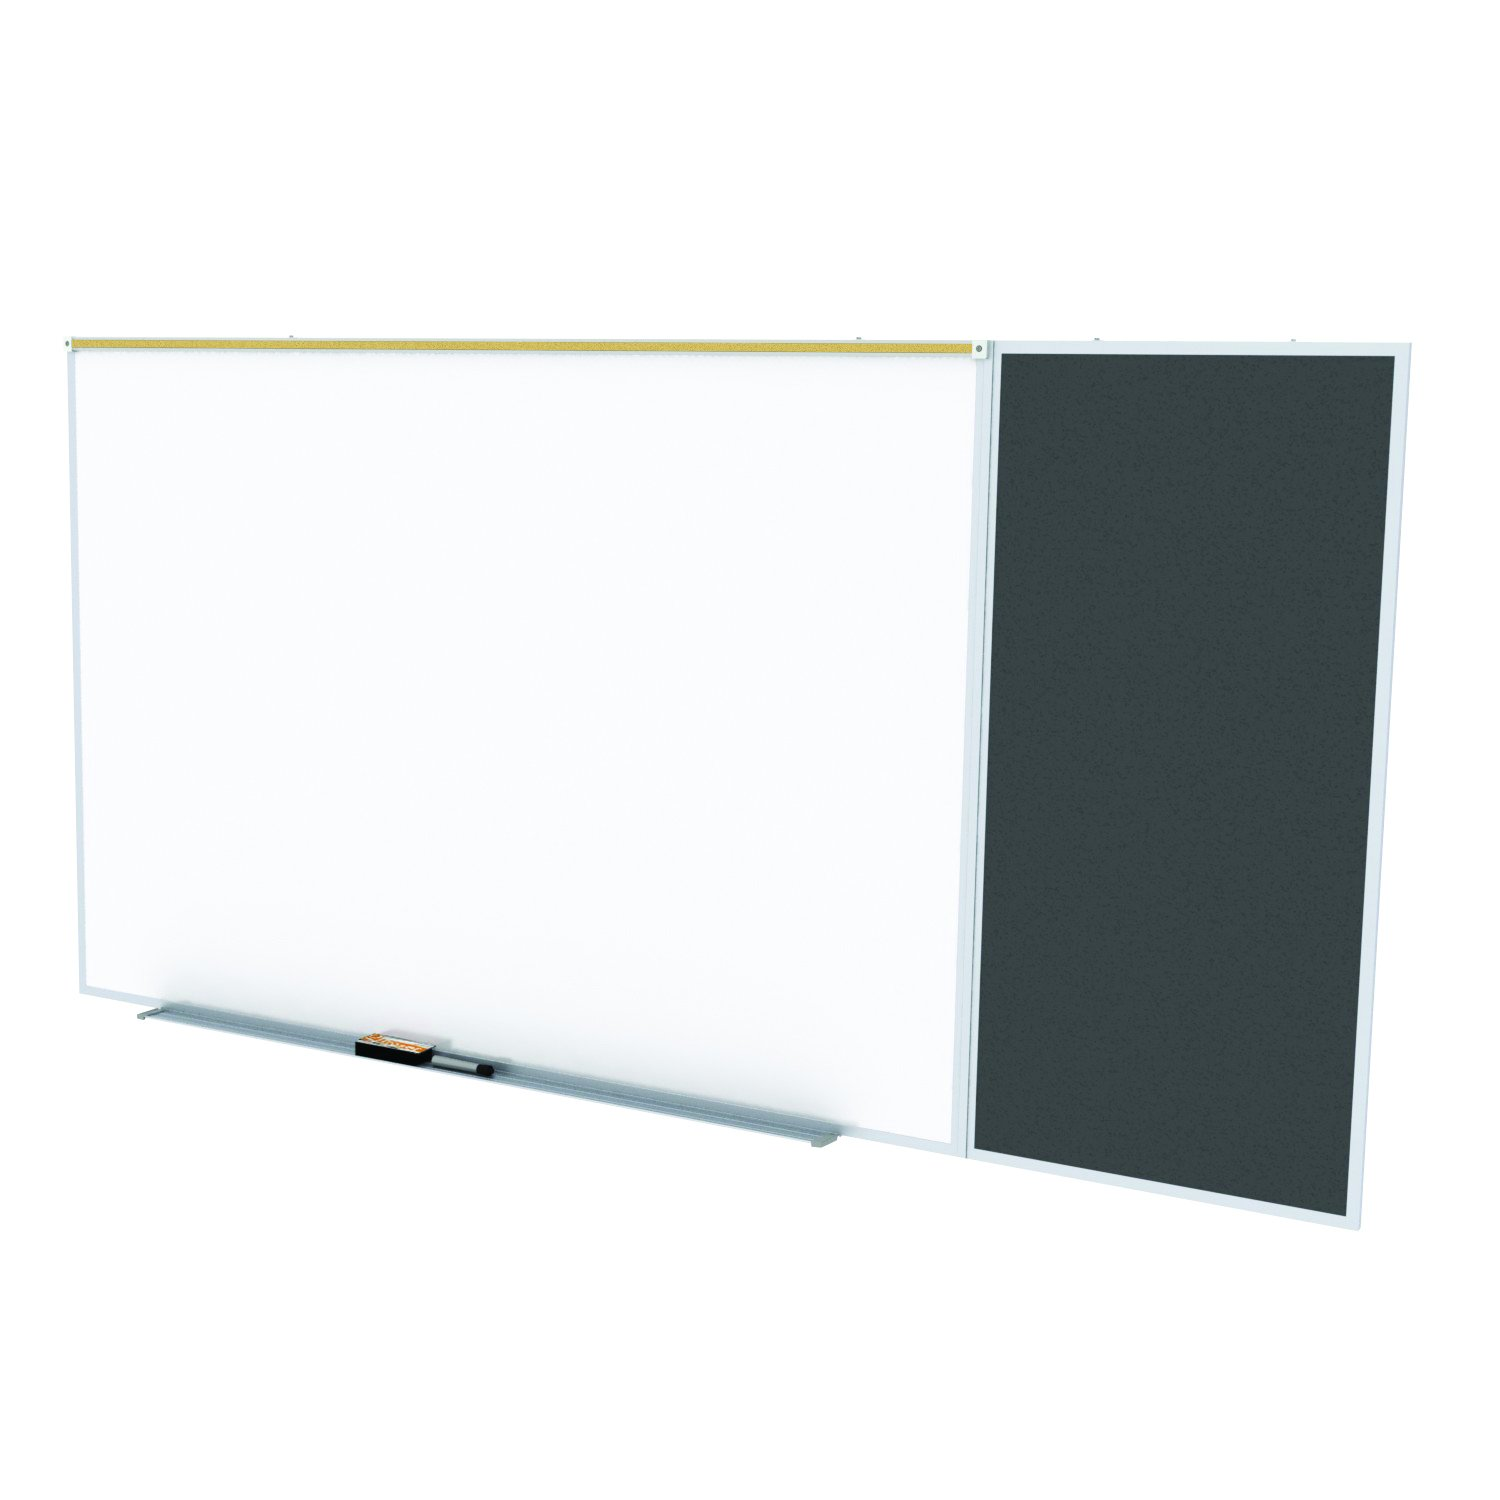 Ghent Style C 4 x 8 Feet Combination Board, Porcelain Magnetic Whiteboard and Recycled Rubber Bulletin Board, Black , Made in the USA